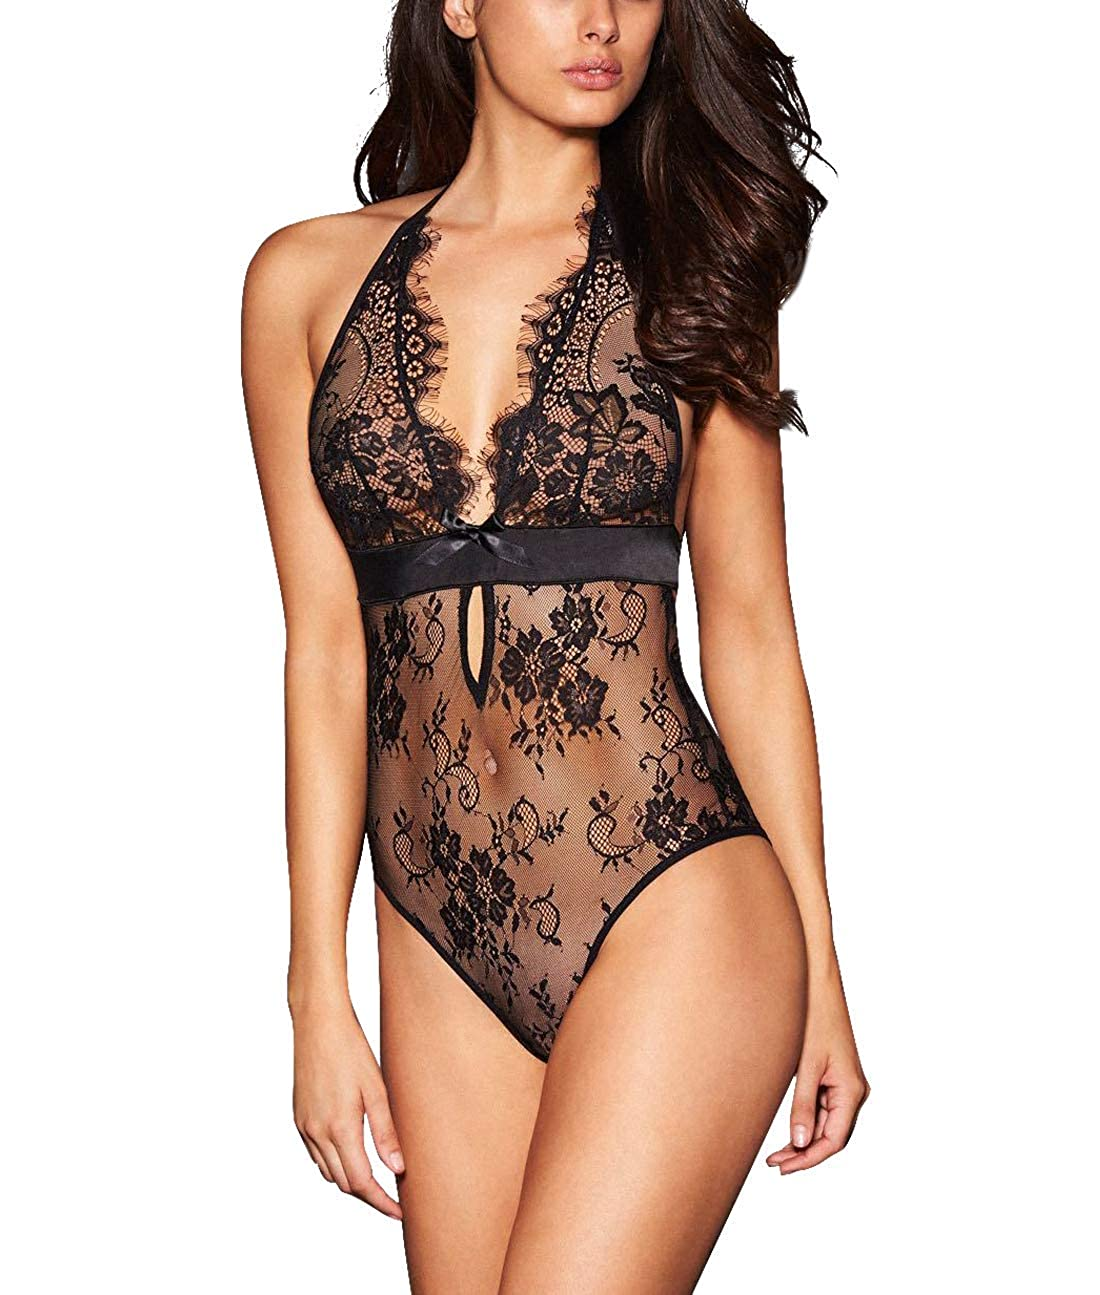 99330034329 This product ALLoveble is protected by the US Trademark Office under the  trademark number 87961329. Women Sexy Lace Lingerie - See-through floral  lace with ...